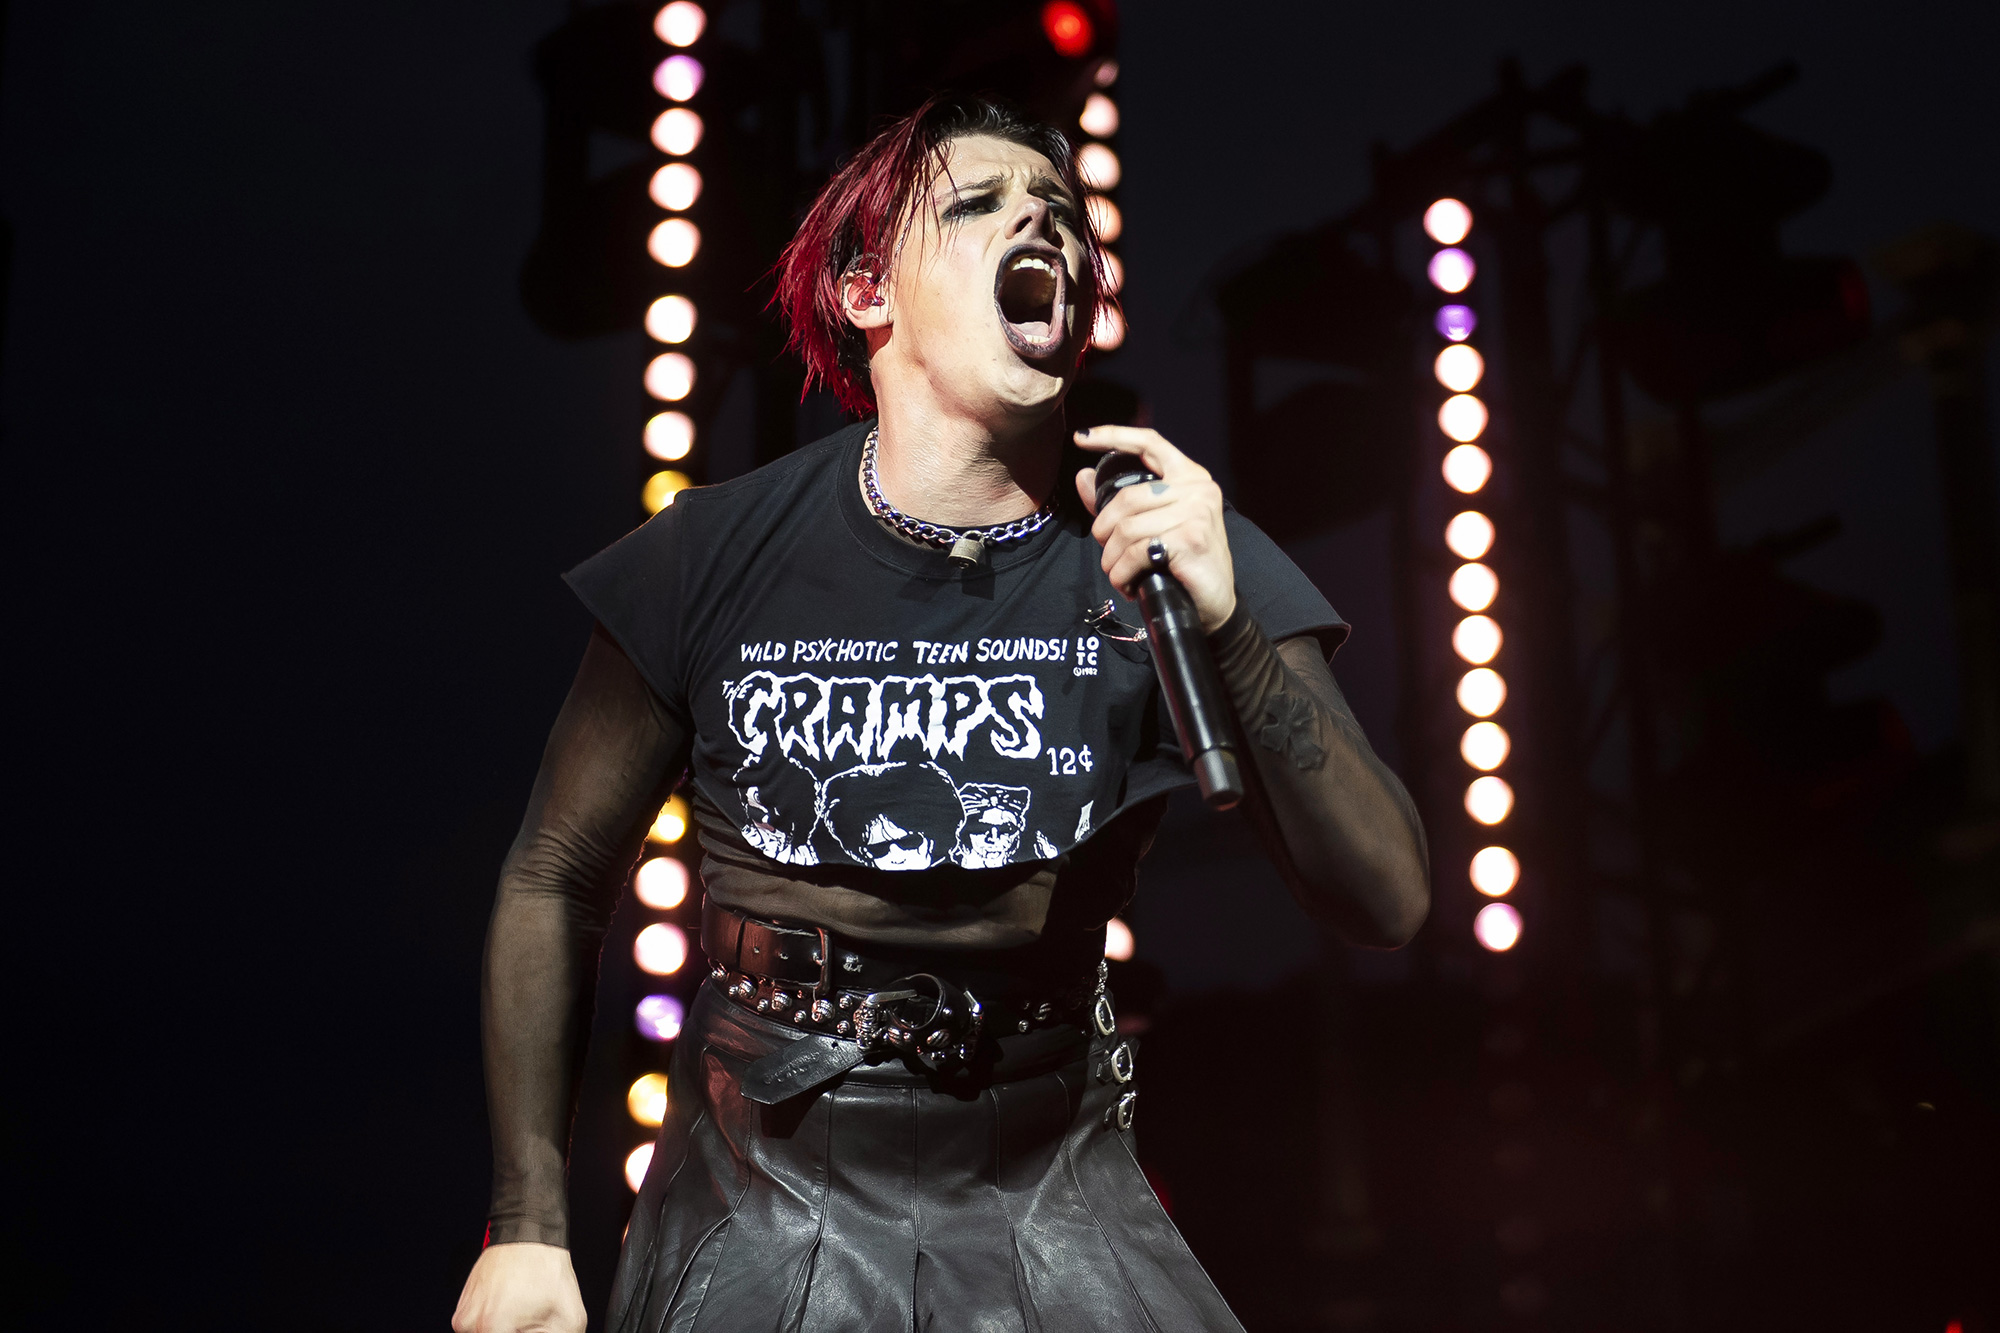 Yungblud performs his song Mars to a live audience alongside London Community Gospel Choir and artist Aries Moross in Kings Cross, London, to launch the Samsung Galaxy Z Fold3 and Z Flip3 devices, which go on sale on Friday. The concept for the concert, featuring a rotating stage, and visuals created by Moross, was inspired by the Multi Window capabilities on the new Samsung